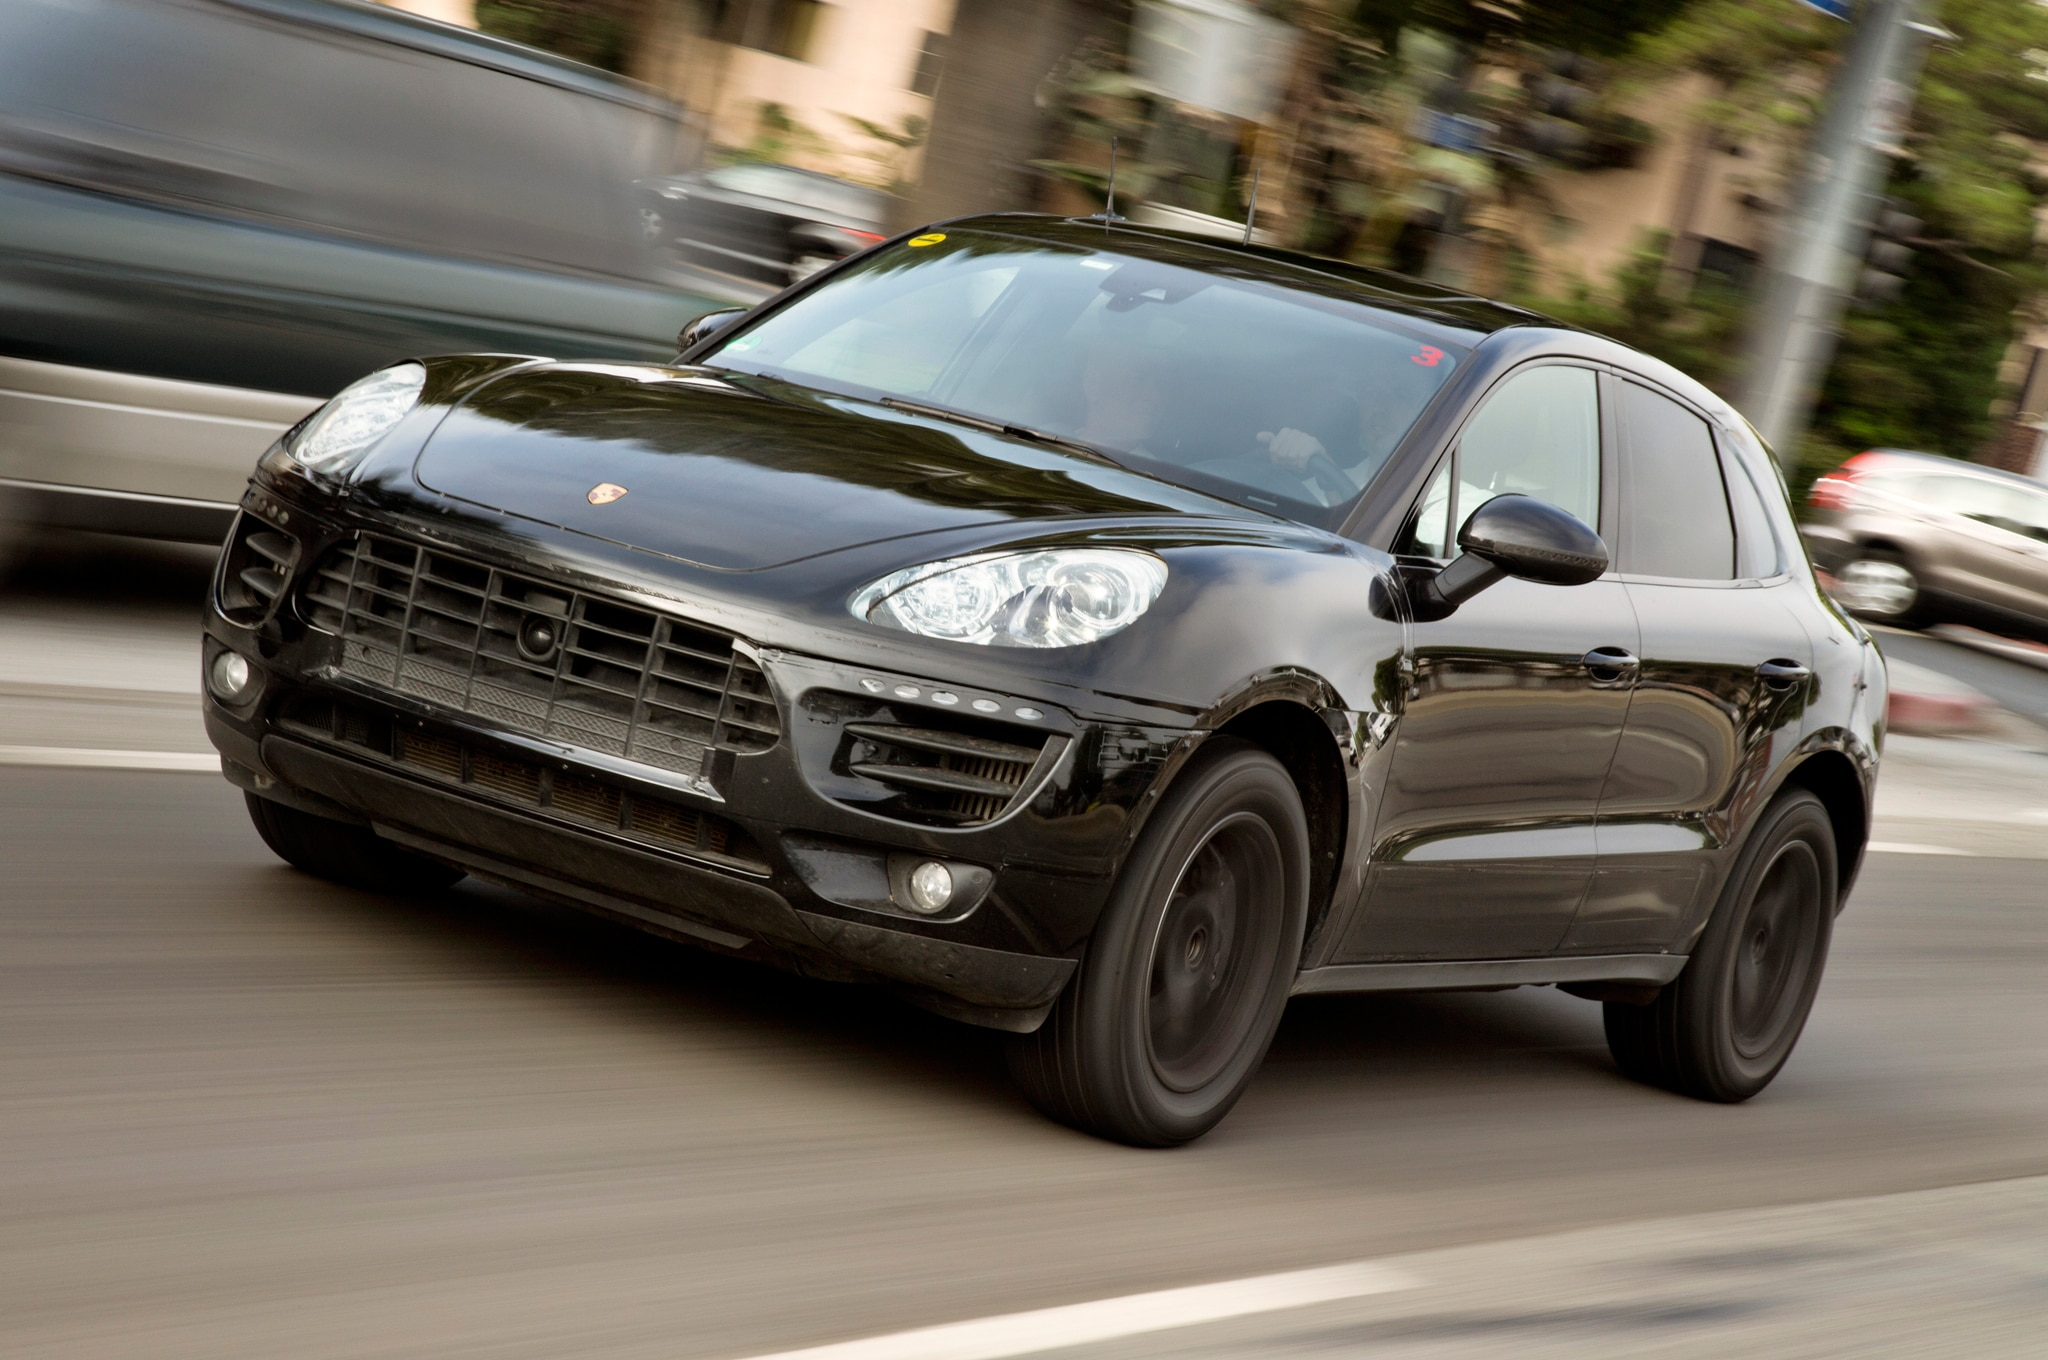 2015 Porsche Macan Prototype Front Three Quarter Motion1